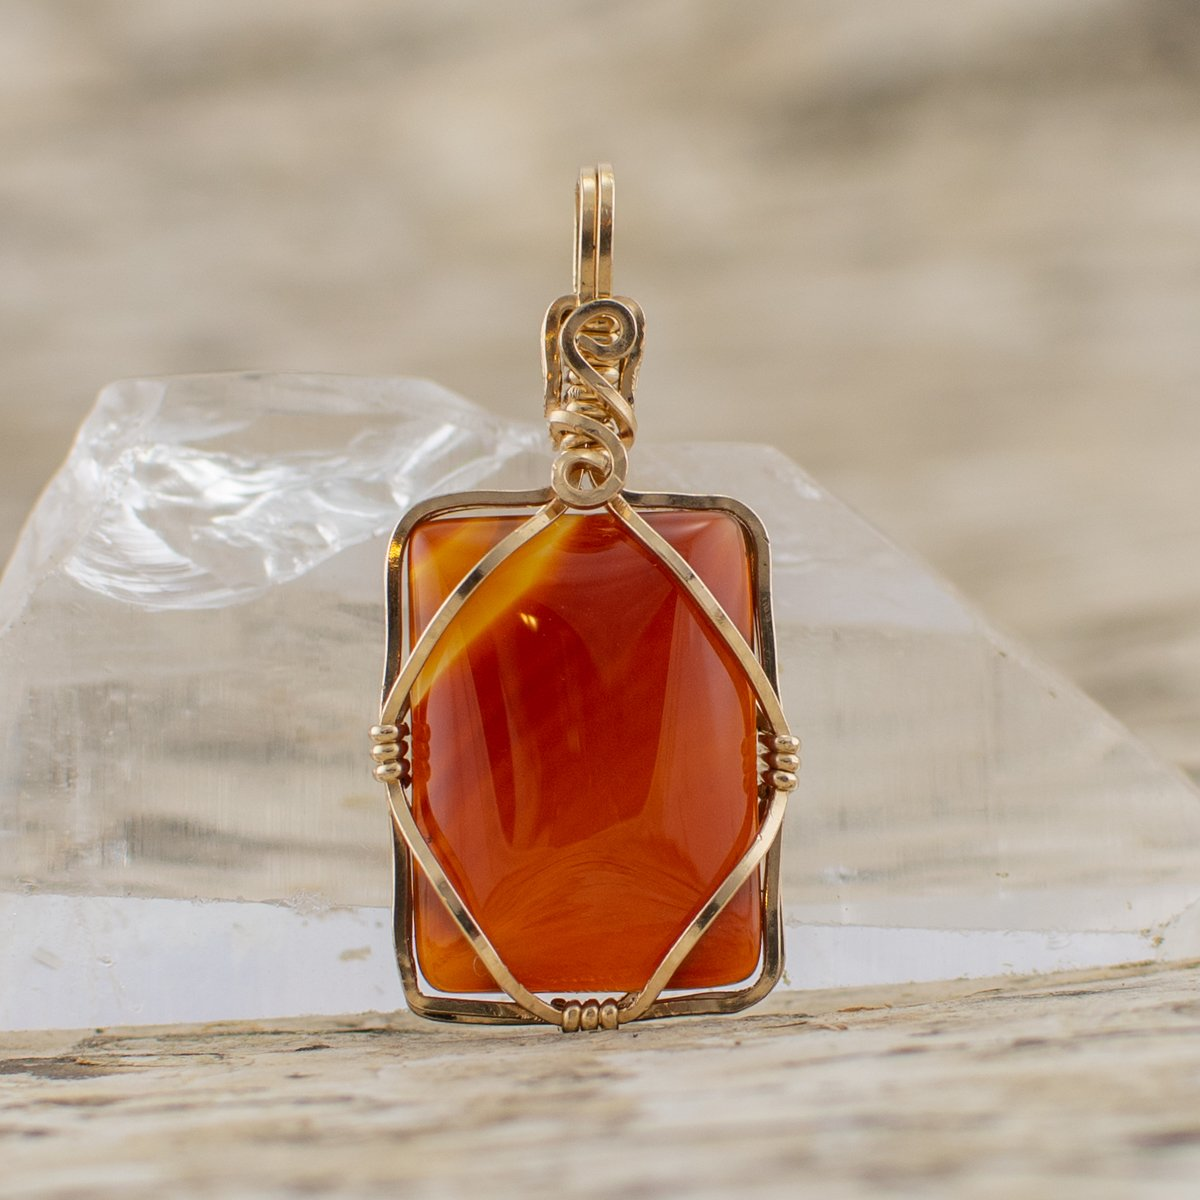 Diamond Within Pendant Orange Stone in Gold